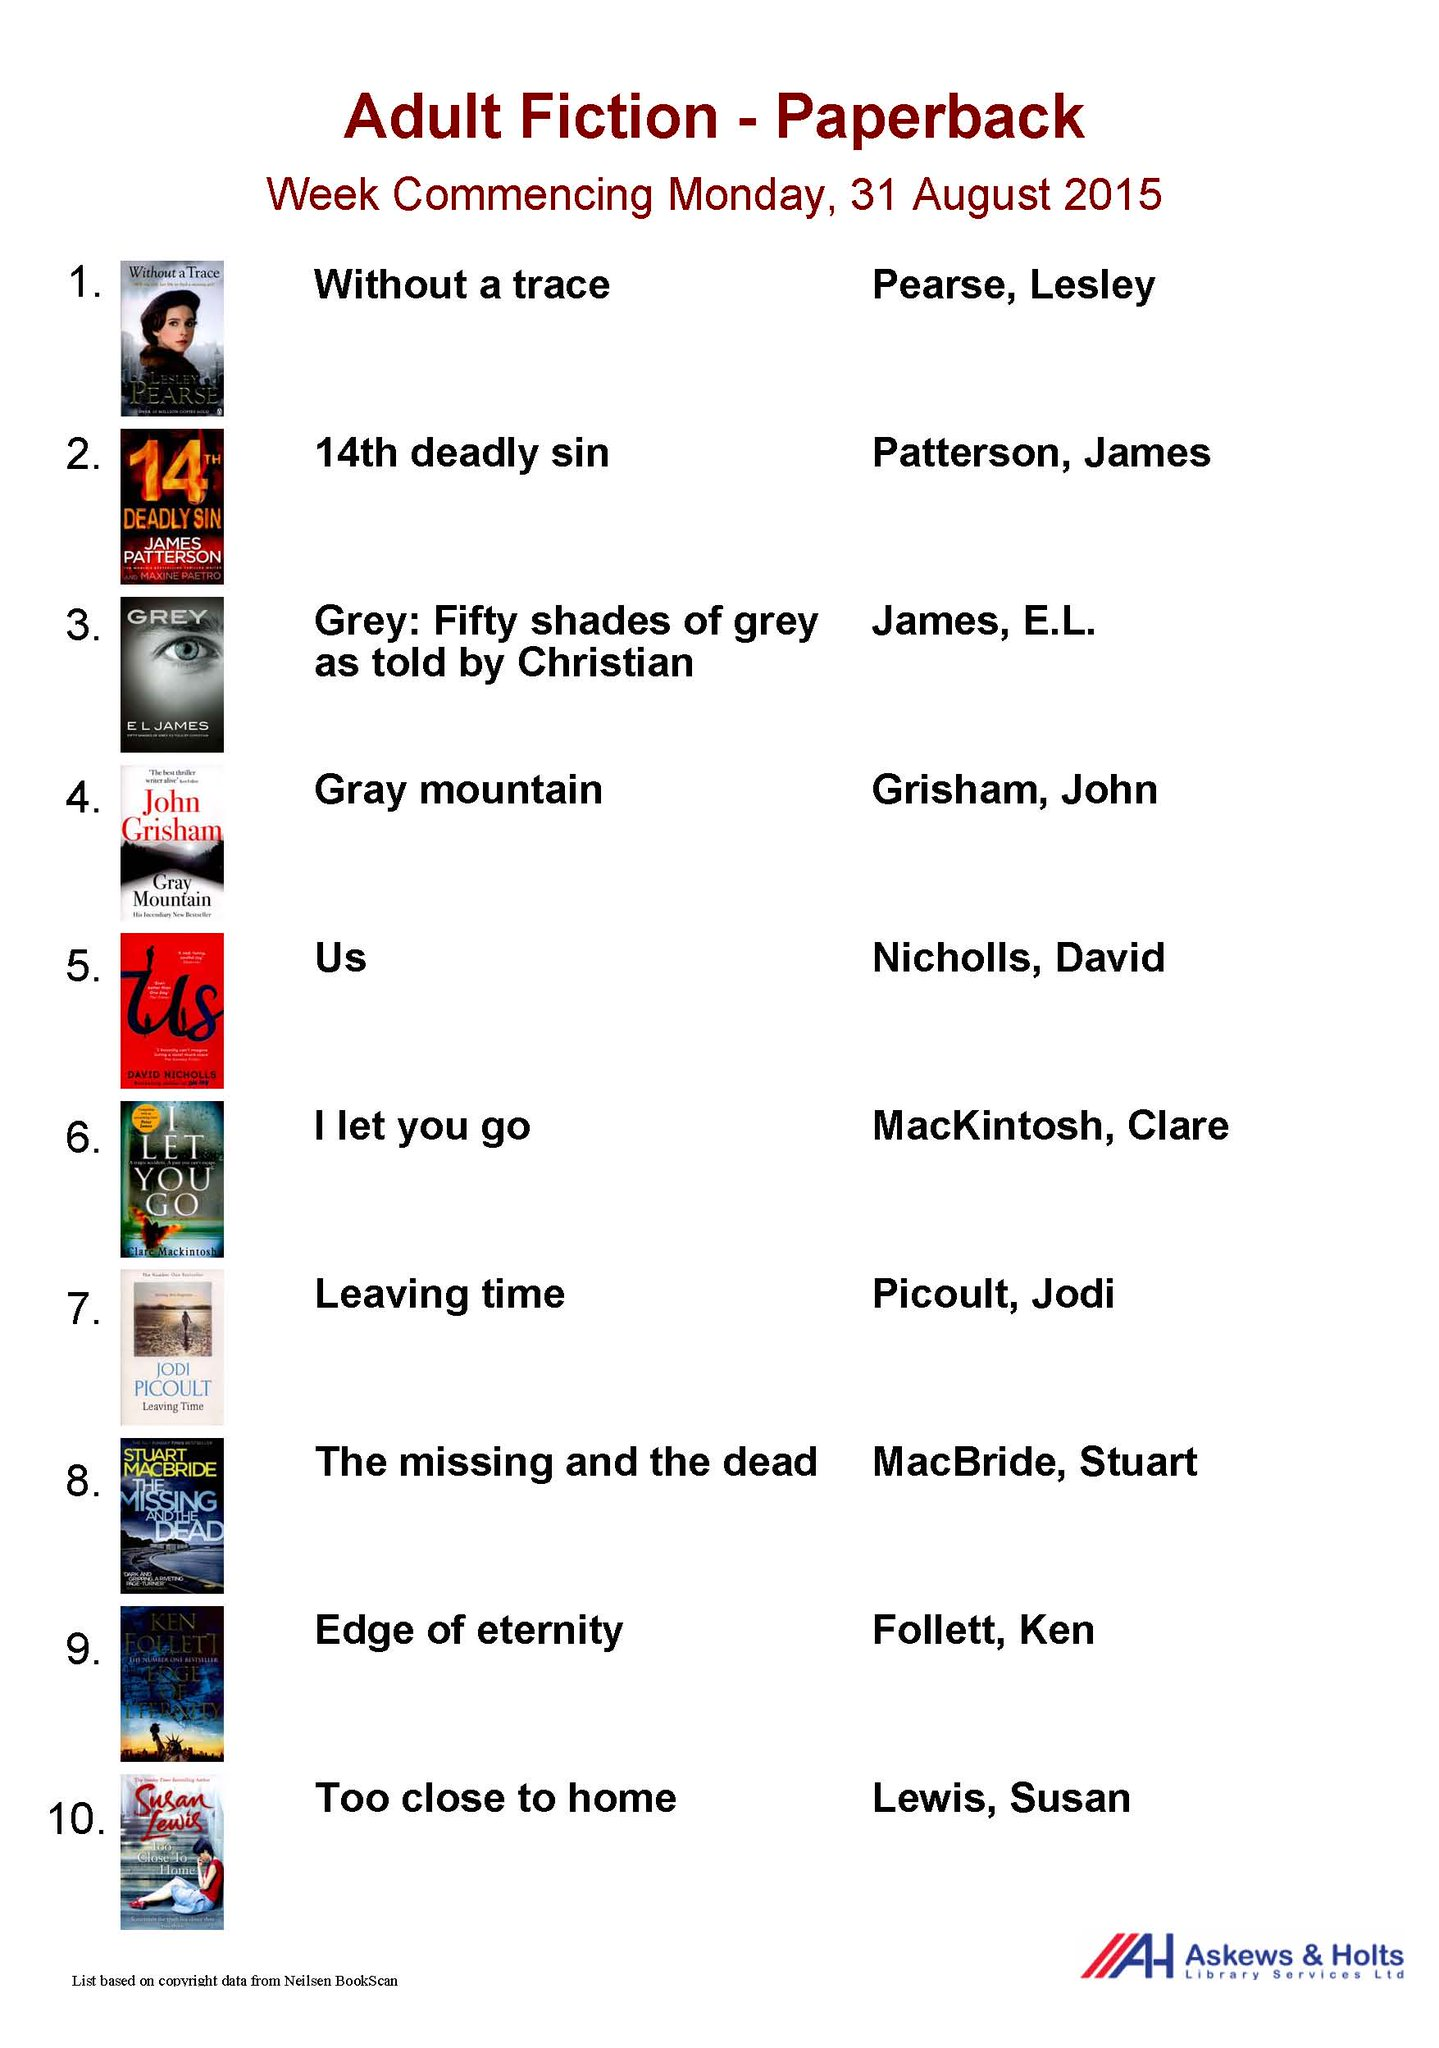 RT @leicesterlibrar: This weeks Top Ten fiction paperbacks for adults #Leicester #Libraries. Search details here - http://t.co/JTQrpqba6K h…